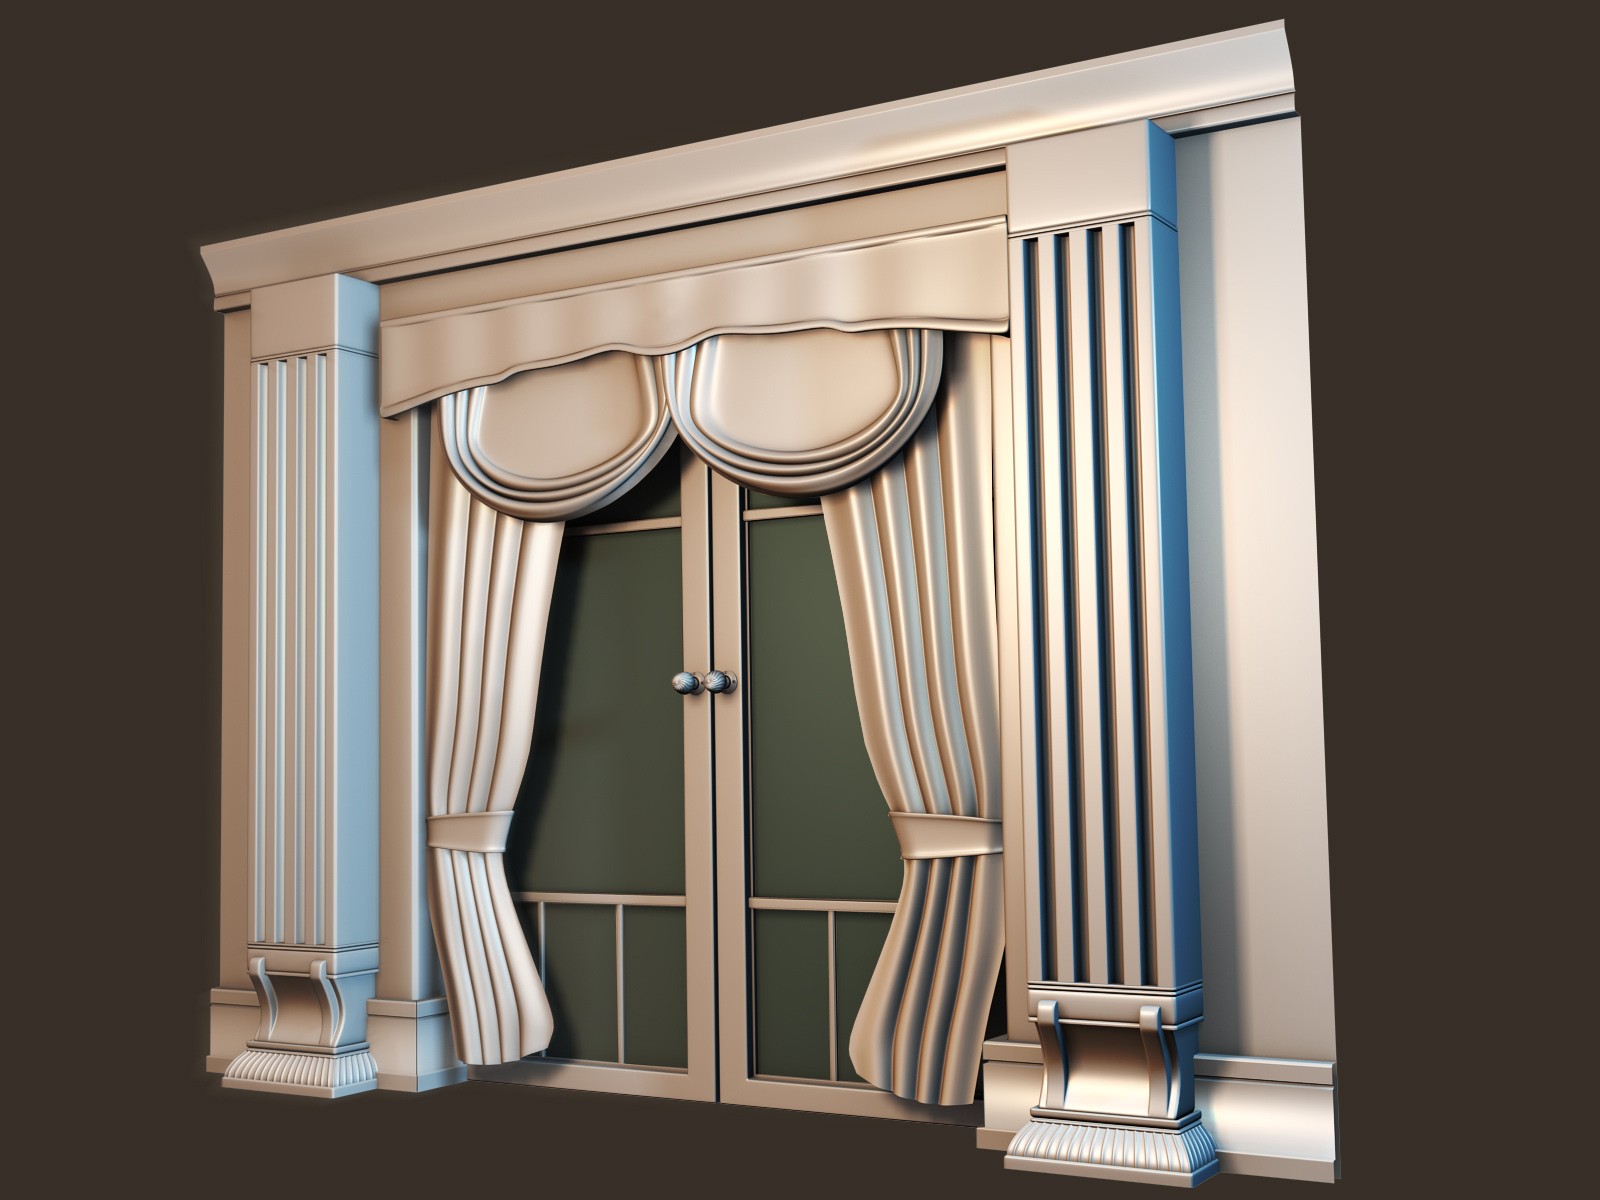 Victorian Wall Section Pre-Zbrush